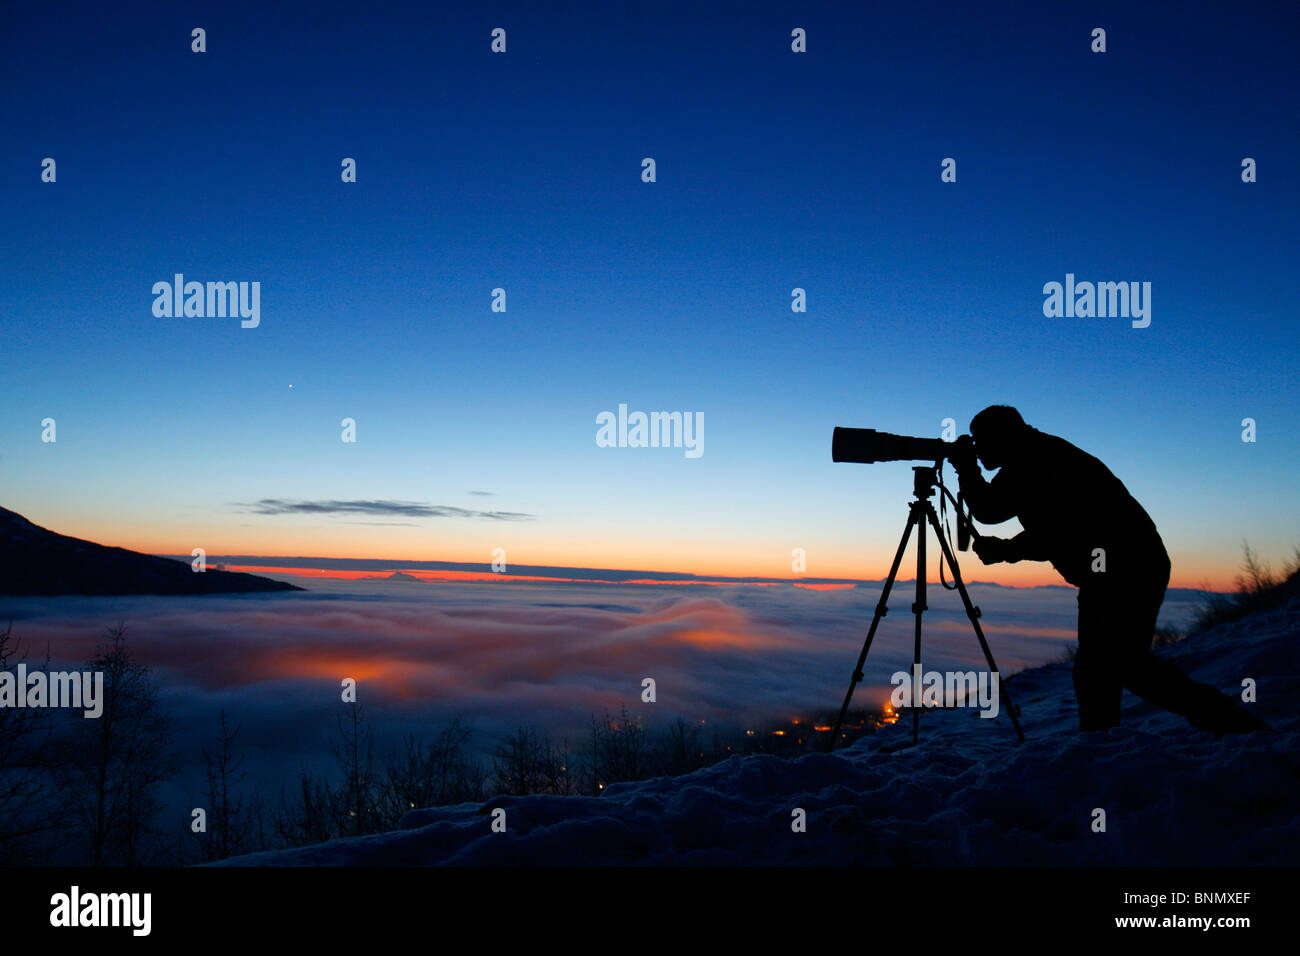 Silhouette of photographer at sunset in Eagle River Valley, Alaska, Winter - Stock Image